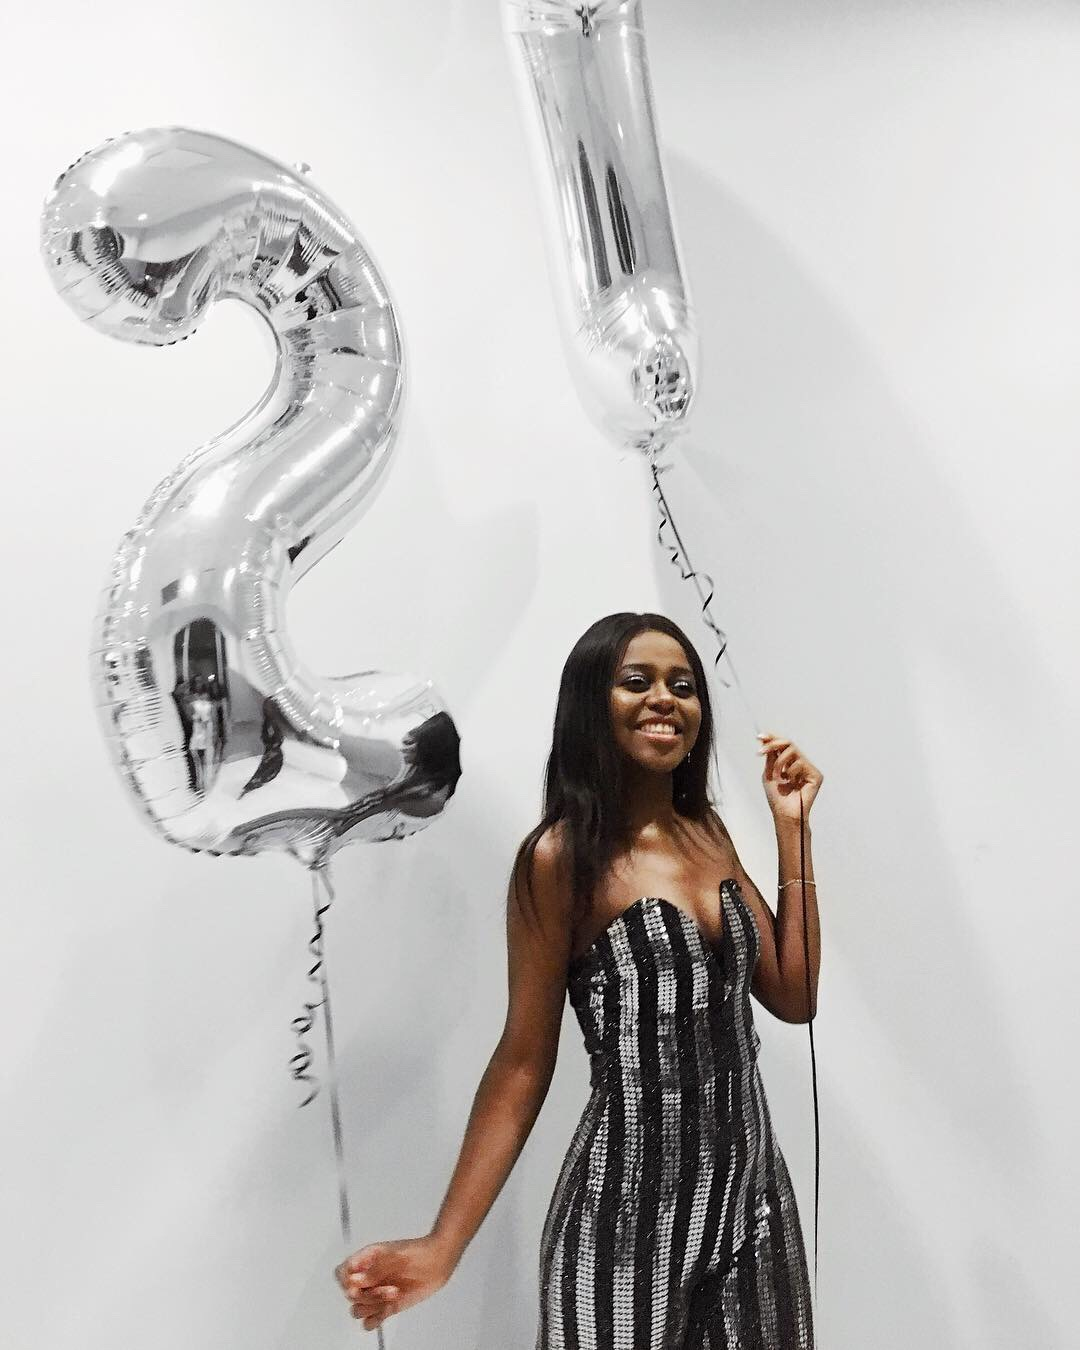 21st birthday, sequin jumpsuit, birthday photoshoot ideas, birthday outfit ideas, what I have learned, 21 things I have learned in my 21 years.